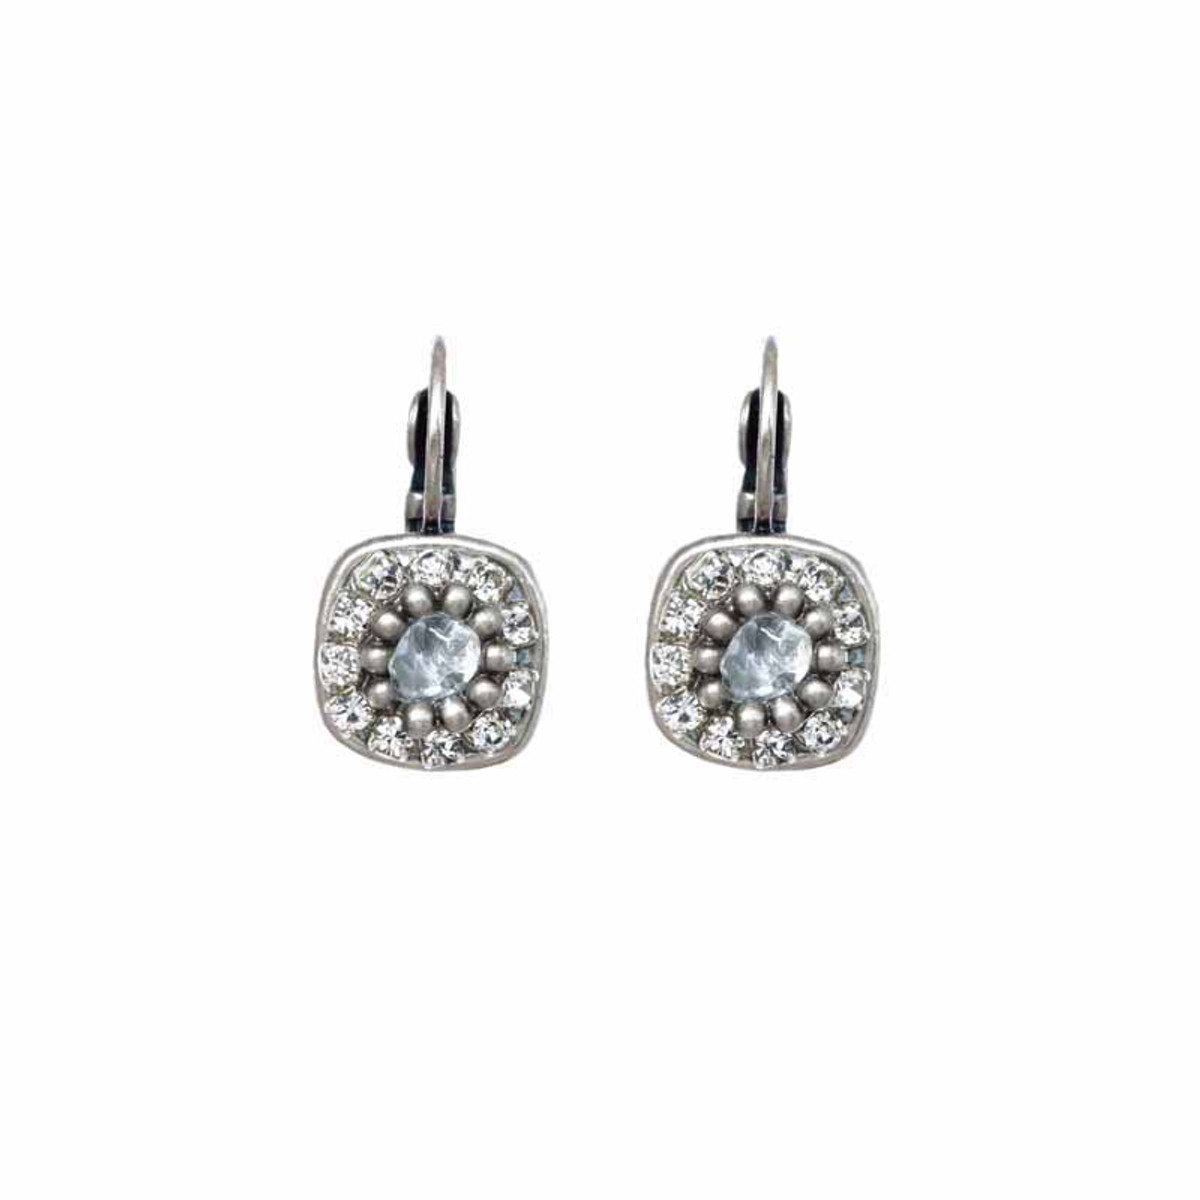 Michal Golan Icy Dreams Tiny Square Earrings